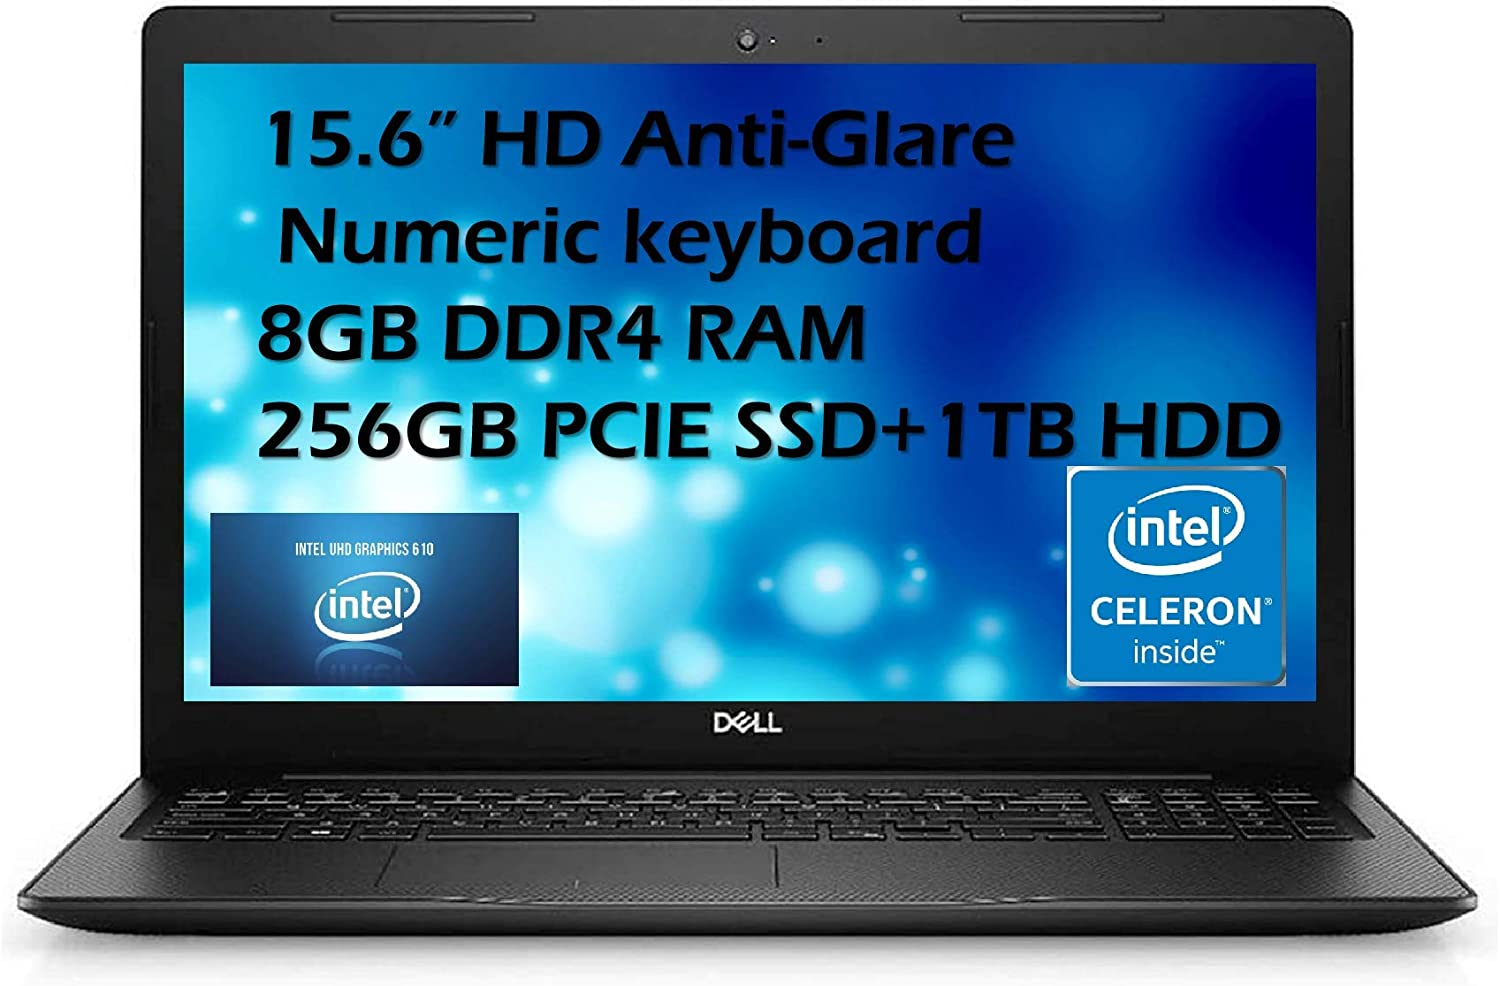 Dell 2021 Flagship Inspiron 15 3583 Laptop 15.6